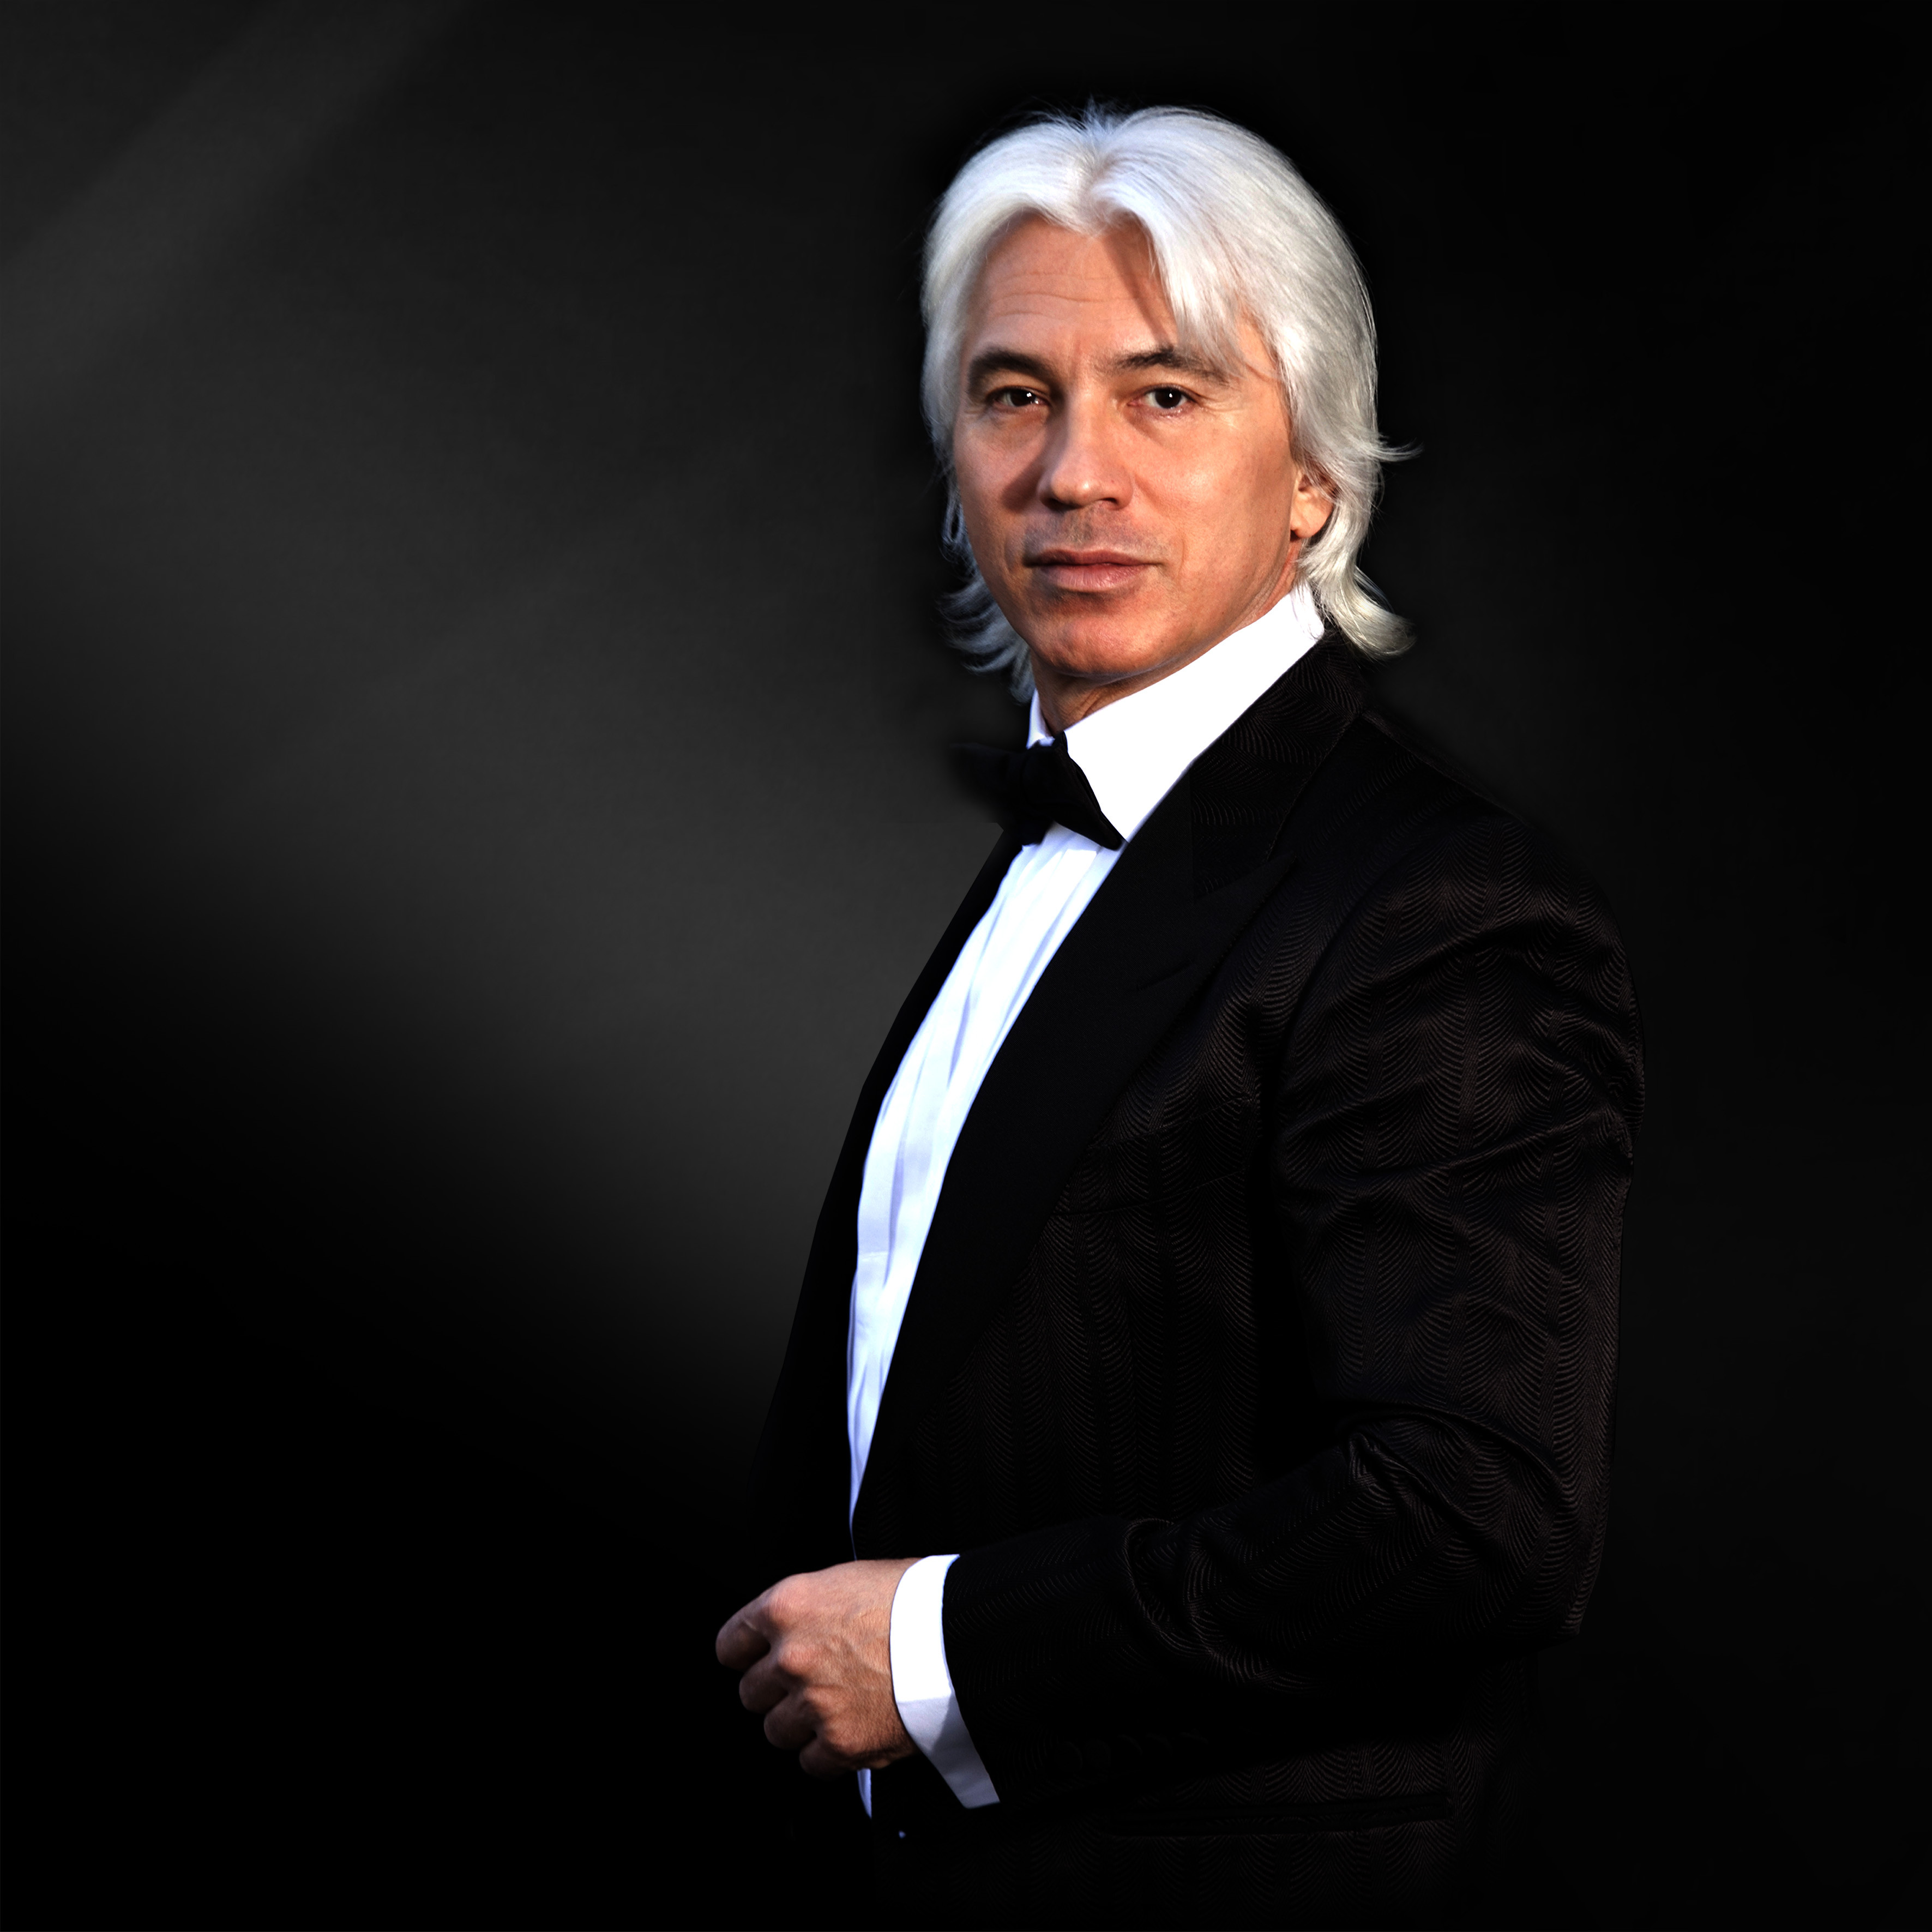 The heirs of Dmitry Hvorostovsky will have to divide his London townhouse 11/24/2017 69